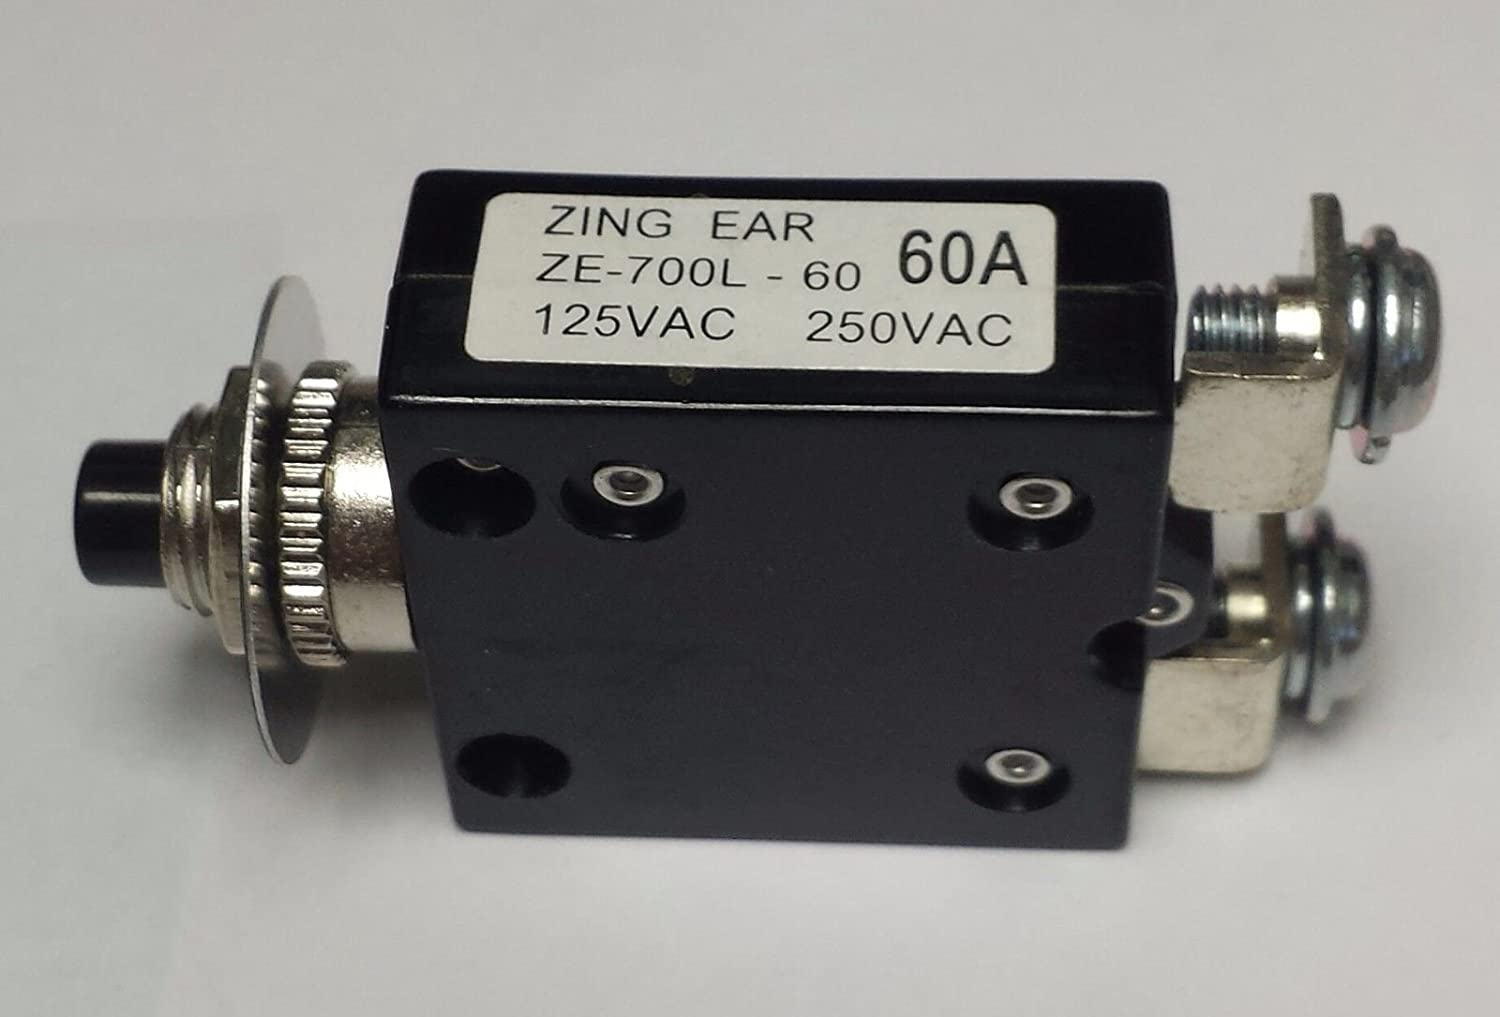 ZE700L-60A Zing Ear thermal circuit breaker replace Potter/&Brumfield W66-series